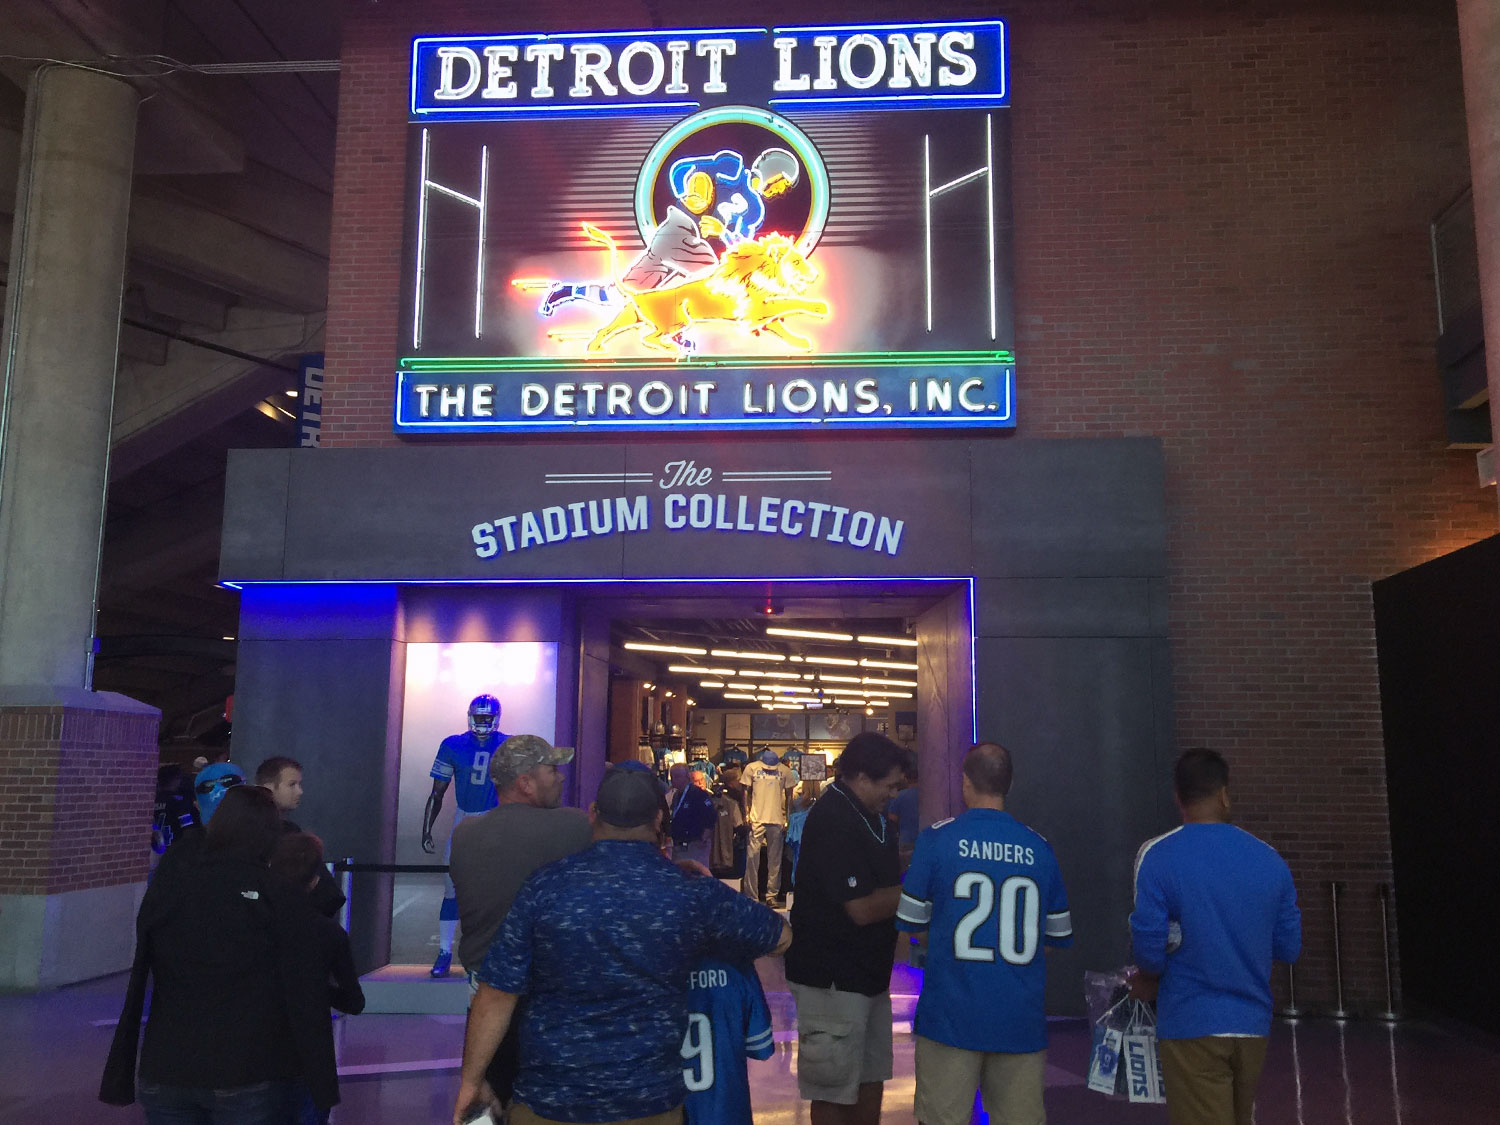 Detroit Lions Ford Field Signage